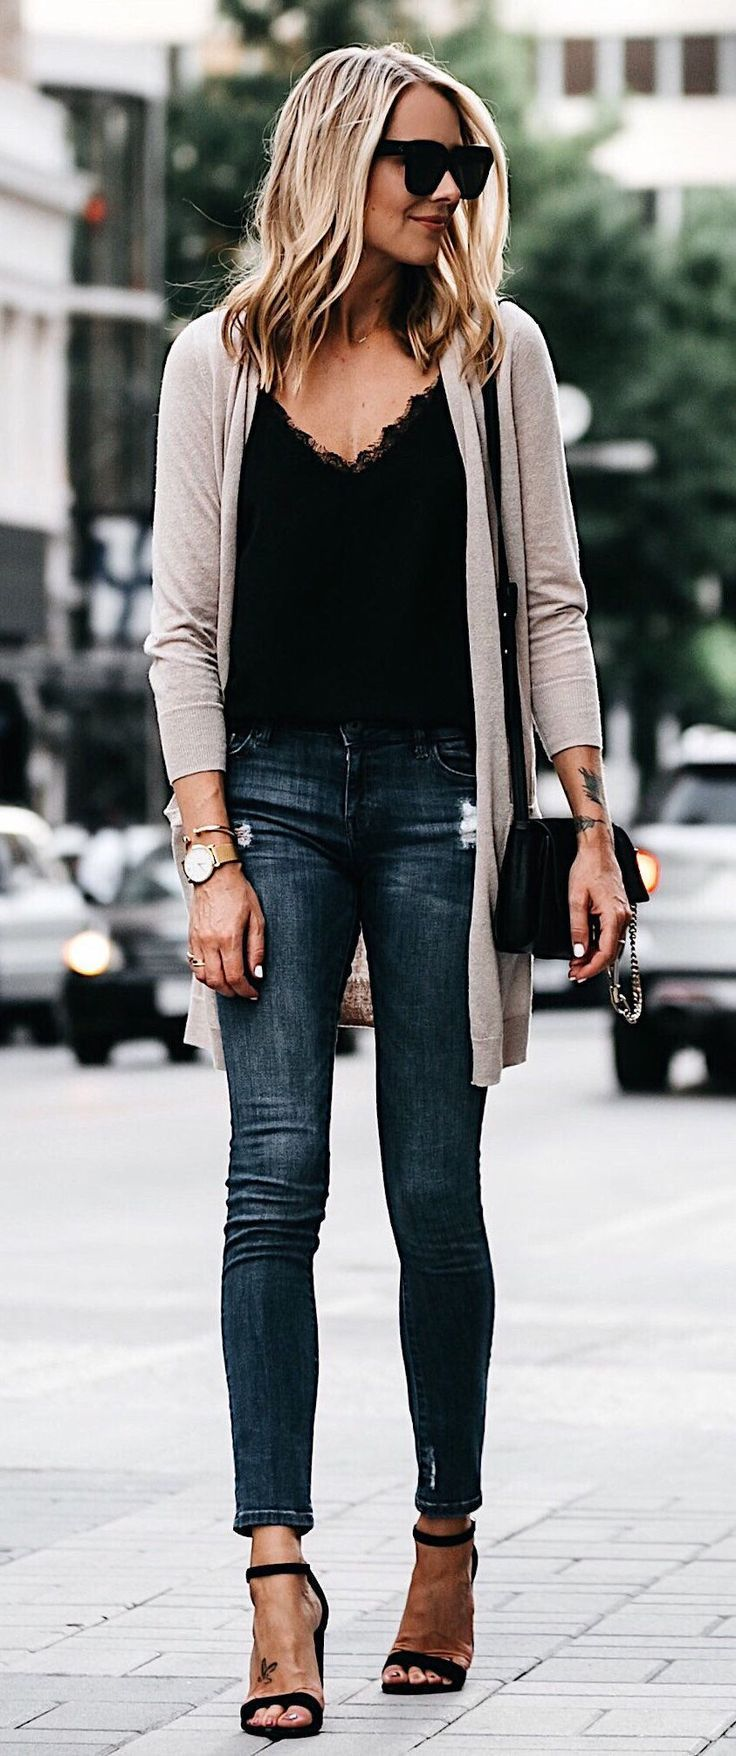 Majestic 21 Casual Fall Outfit Ideas for You to Steal https://www.fashiotopia.com/2017/10/22/21-casual-fall-outfit-ideas-steal/ No matter whether you're a 6 feet tall girl or you fall in the class of petite ladies, this is critical have clothing for all. It's reasonable to say that the vast majority of women love fashion and wearing beautiful clothing #ladiesfashion,